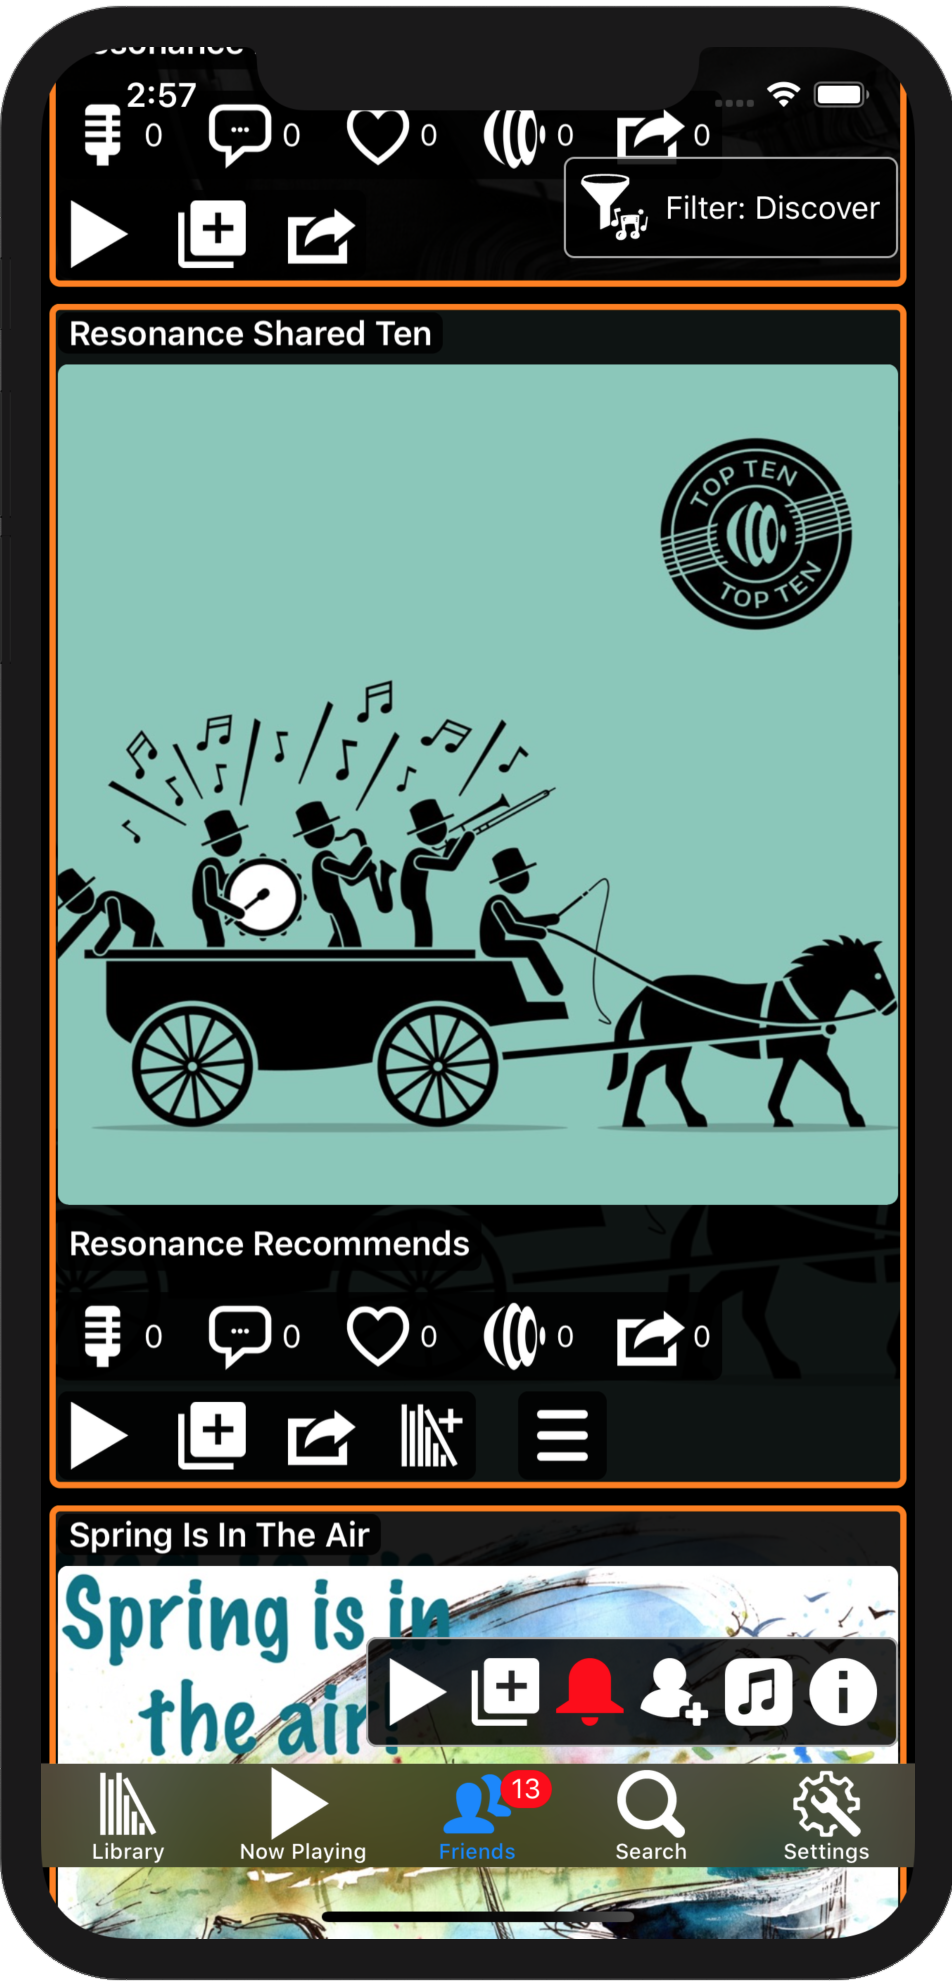 Image showing the Resonance recommendations Now Playing playlist in the music feed on an iPhone